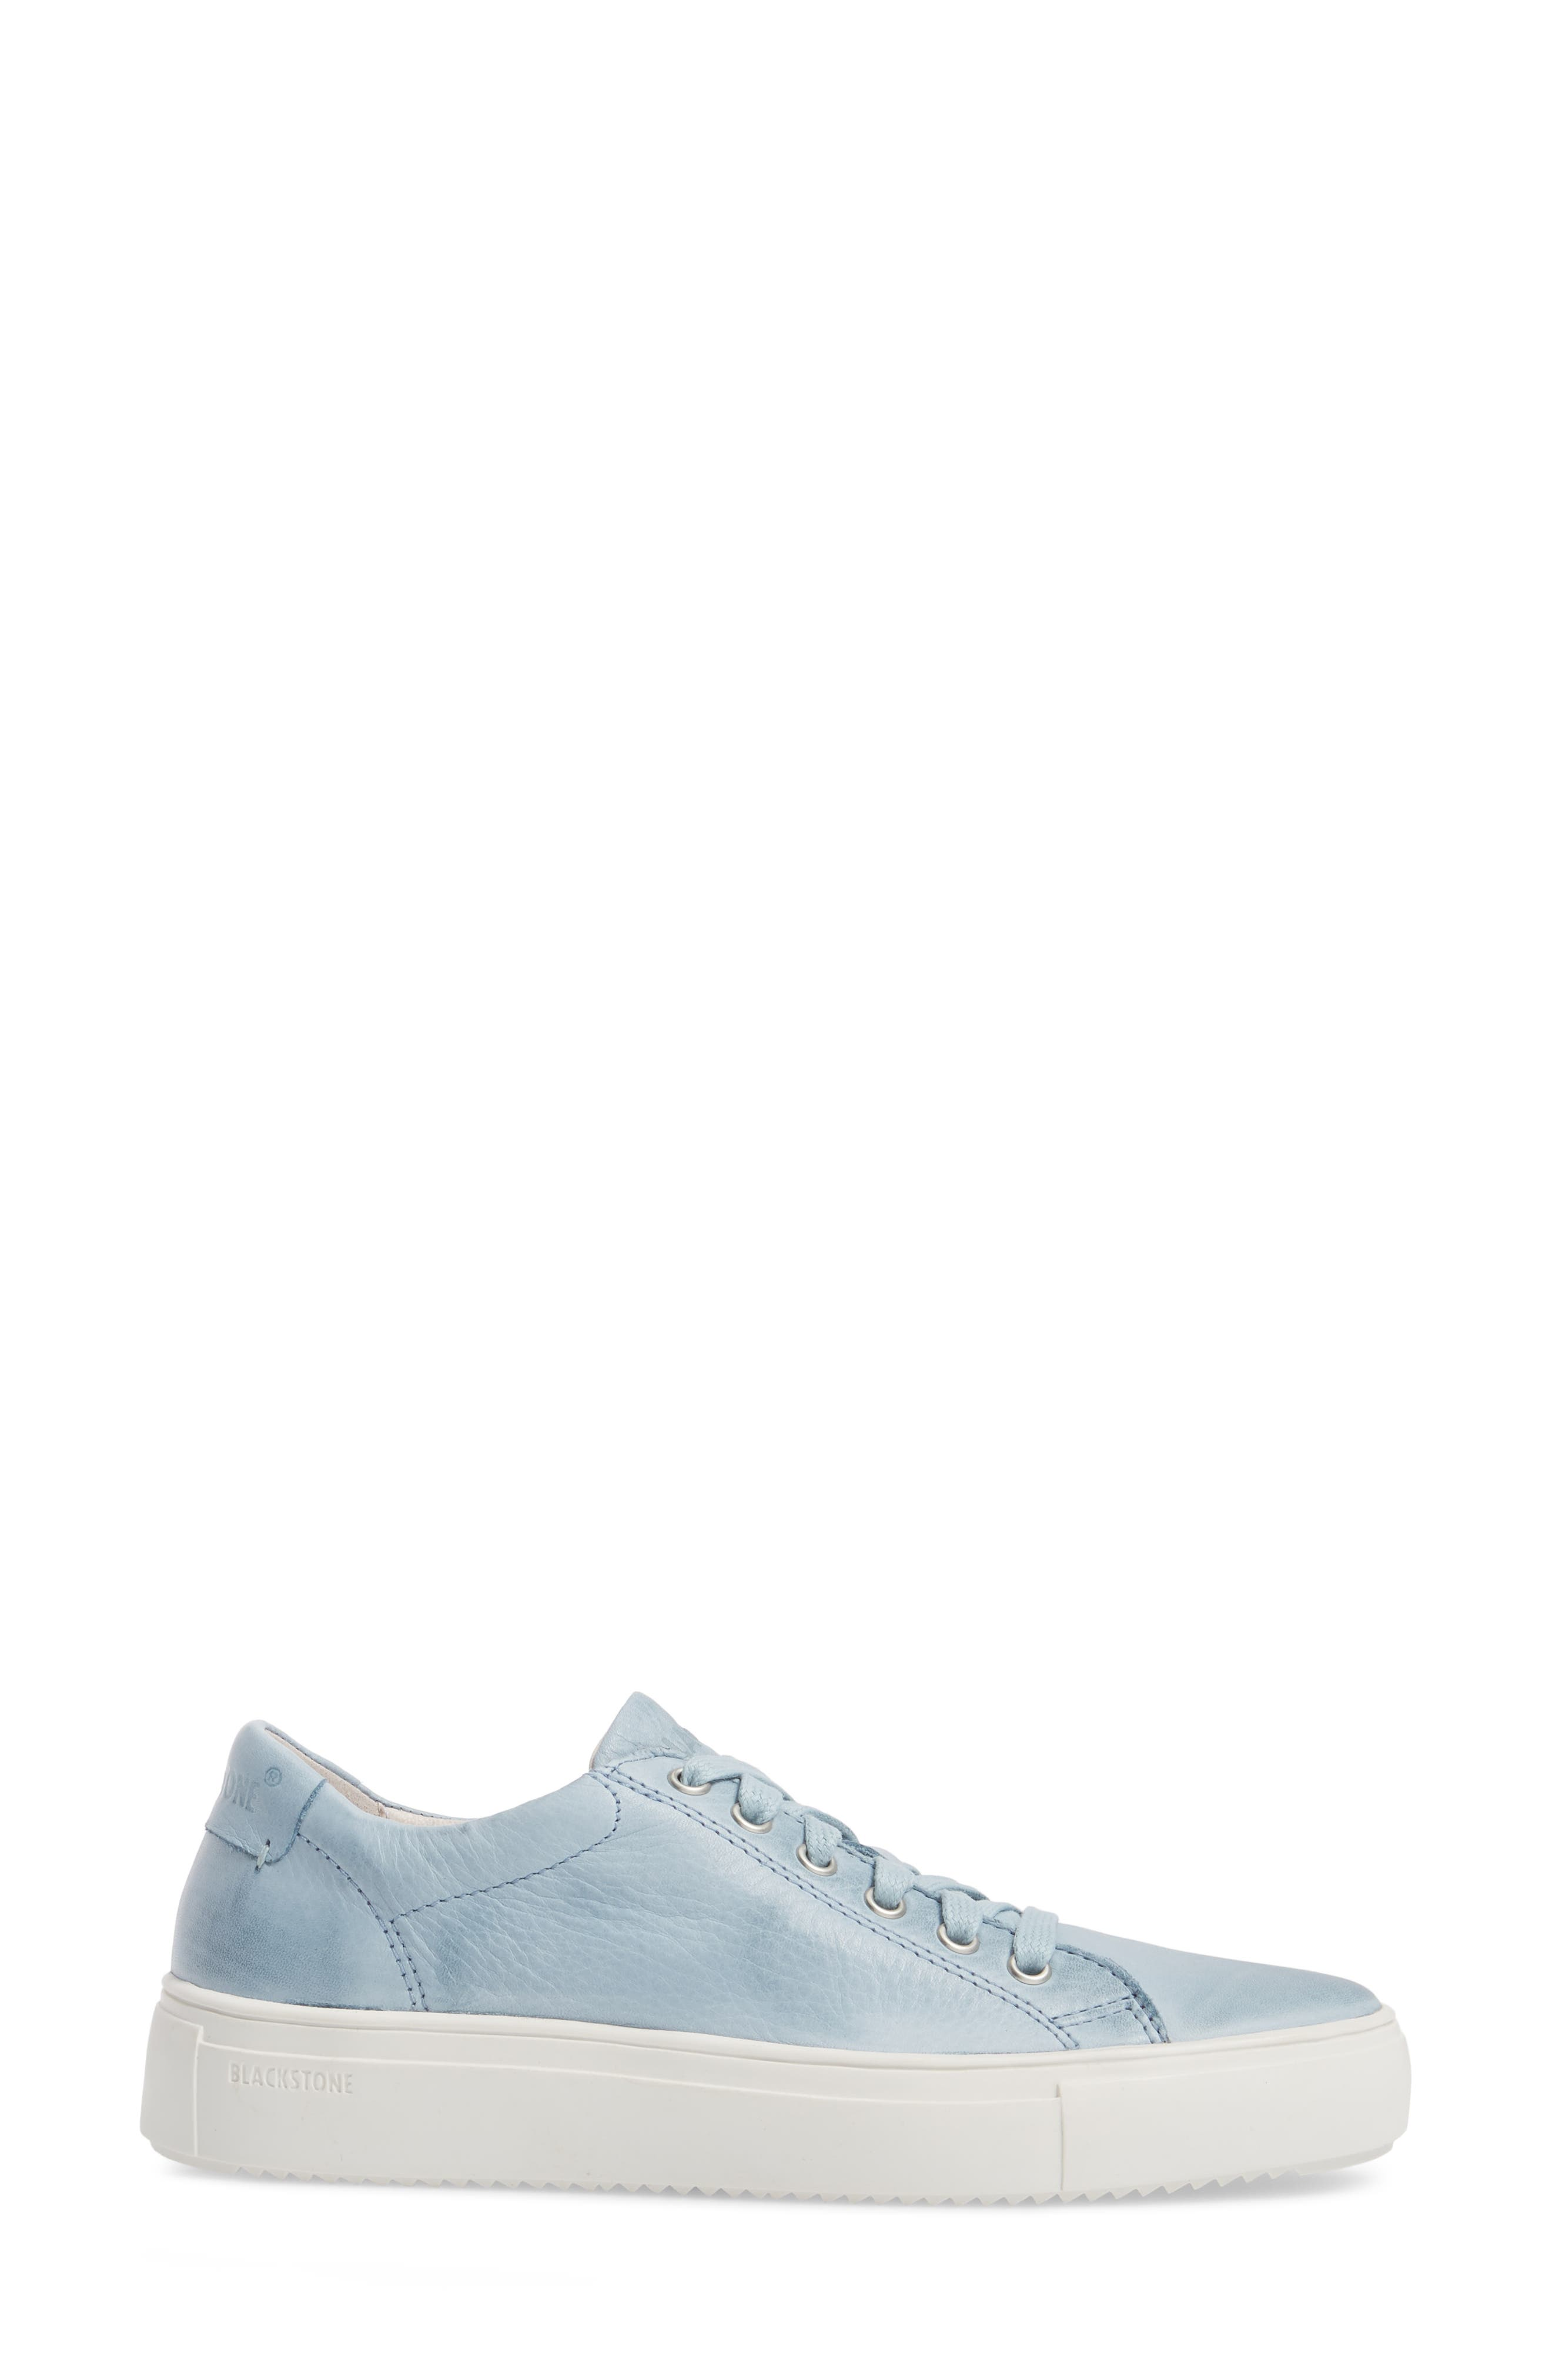 PL71 Low Top Sneaker,                             Alternate thumbnail 3, color,                             Sky Blue Leather